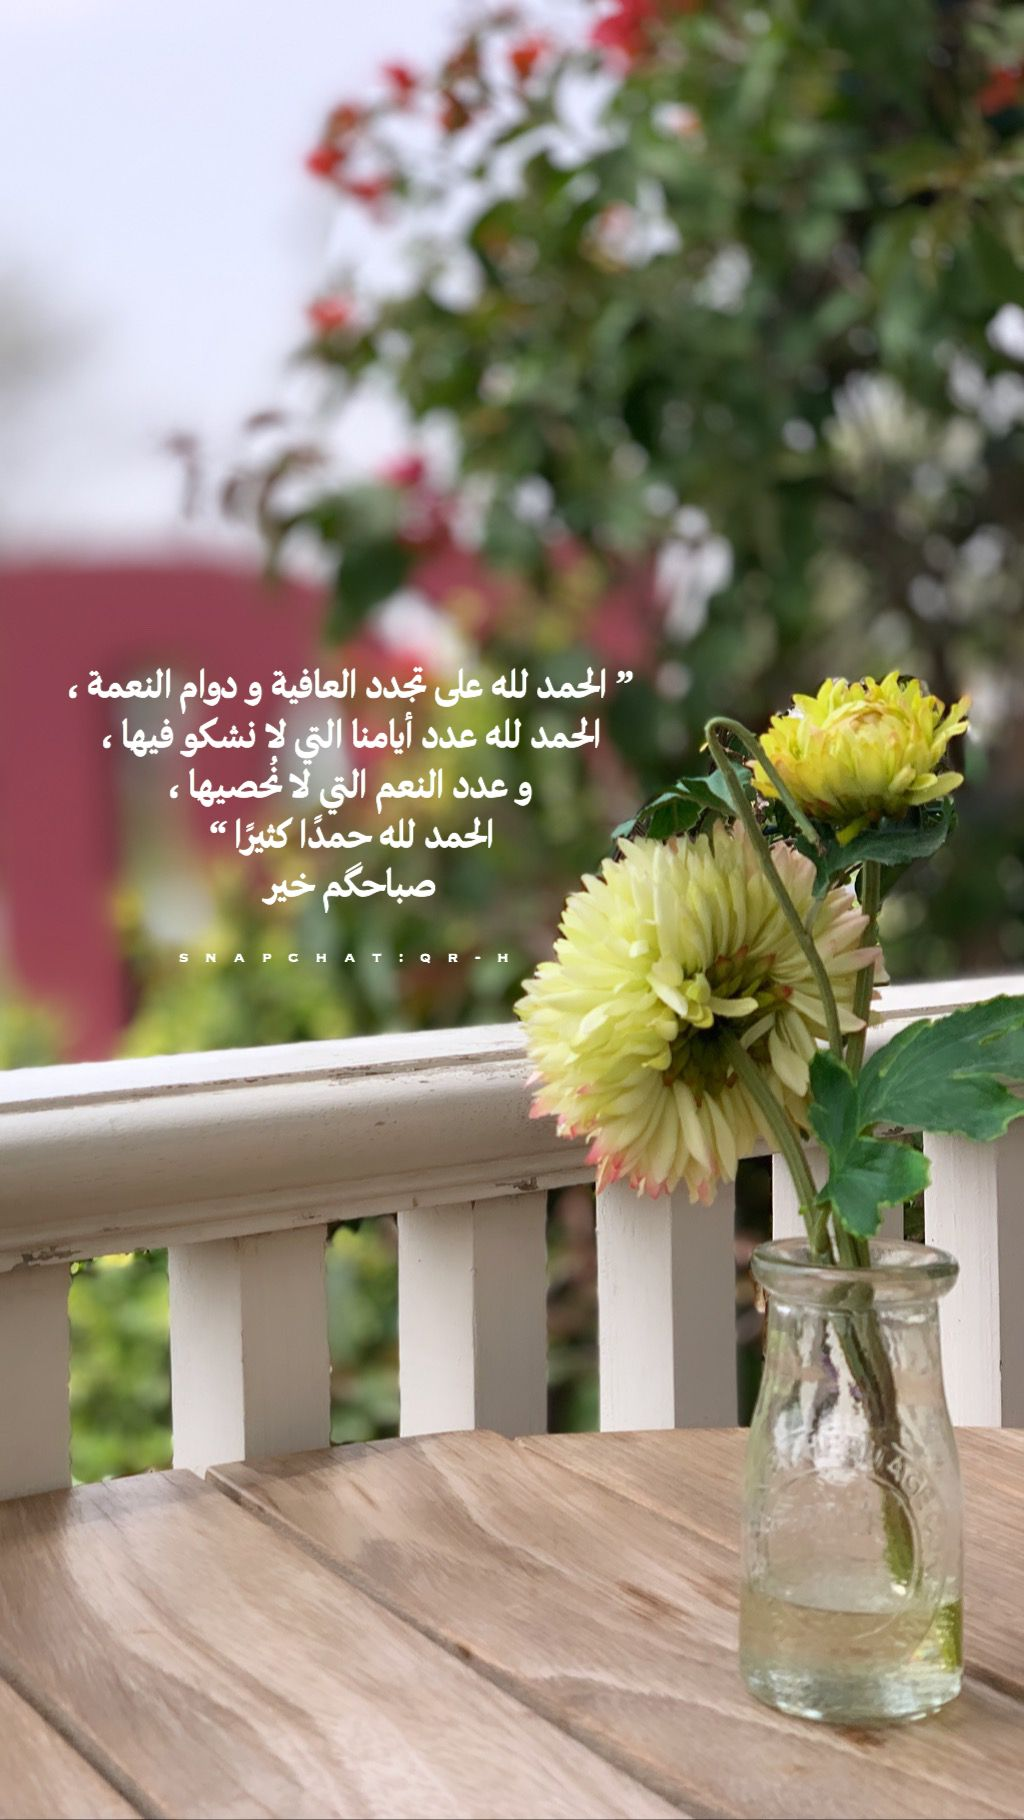 Pin By Safa On دعوات الصباح Cover Photo Quotes Good Morning Images Love Quotes Wallpaper